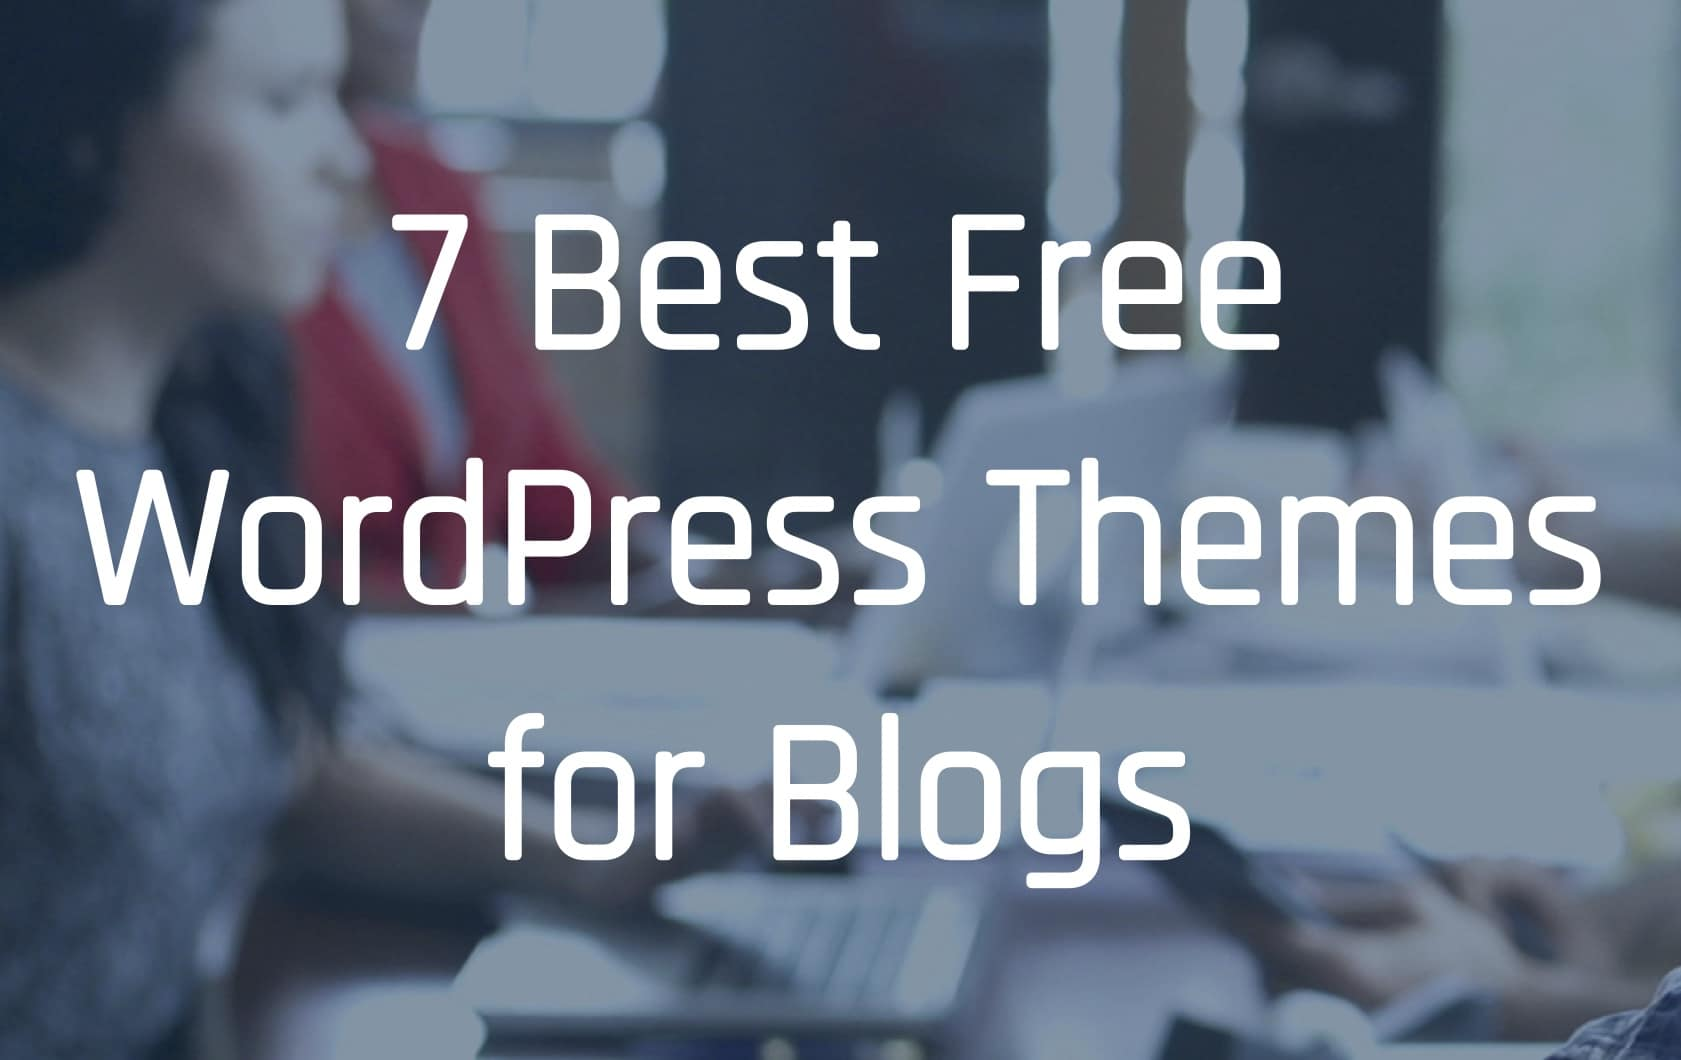 7 Best Free WordPress Themes for Blogs